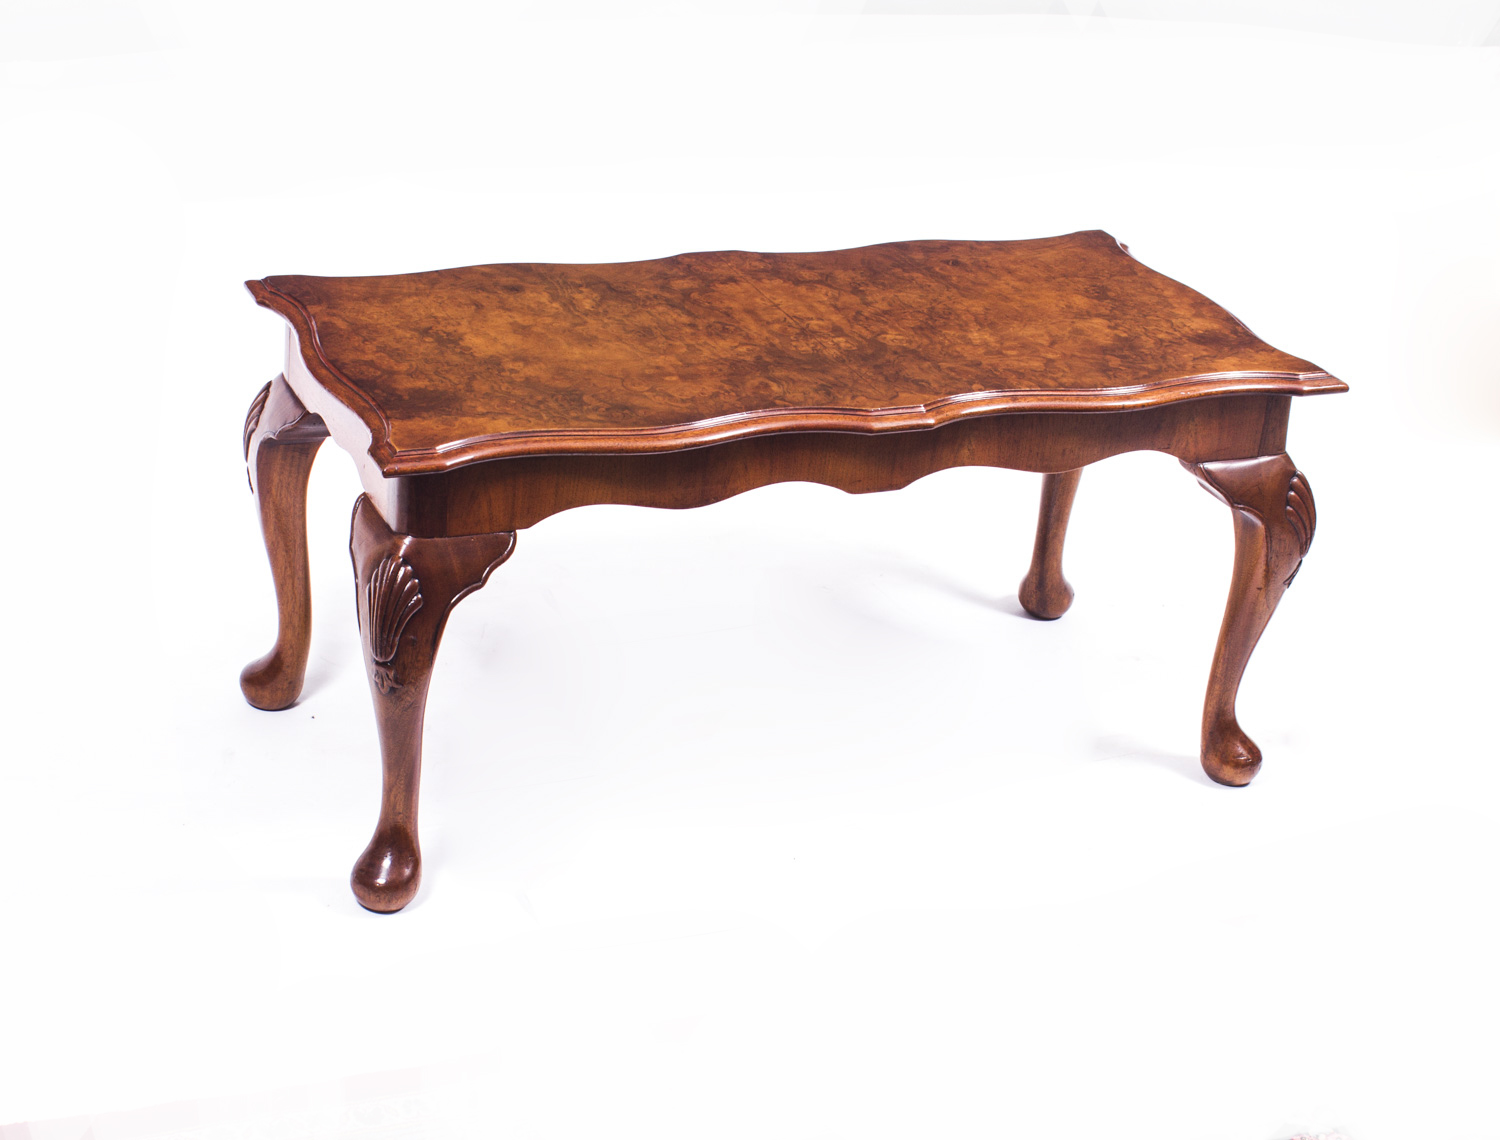 vintage burr walnut queen anne style coffee table ref no 06764. Black Bedroom Furniture Sets. Home Design Ideas